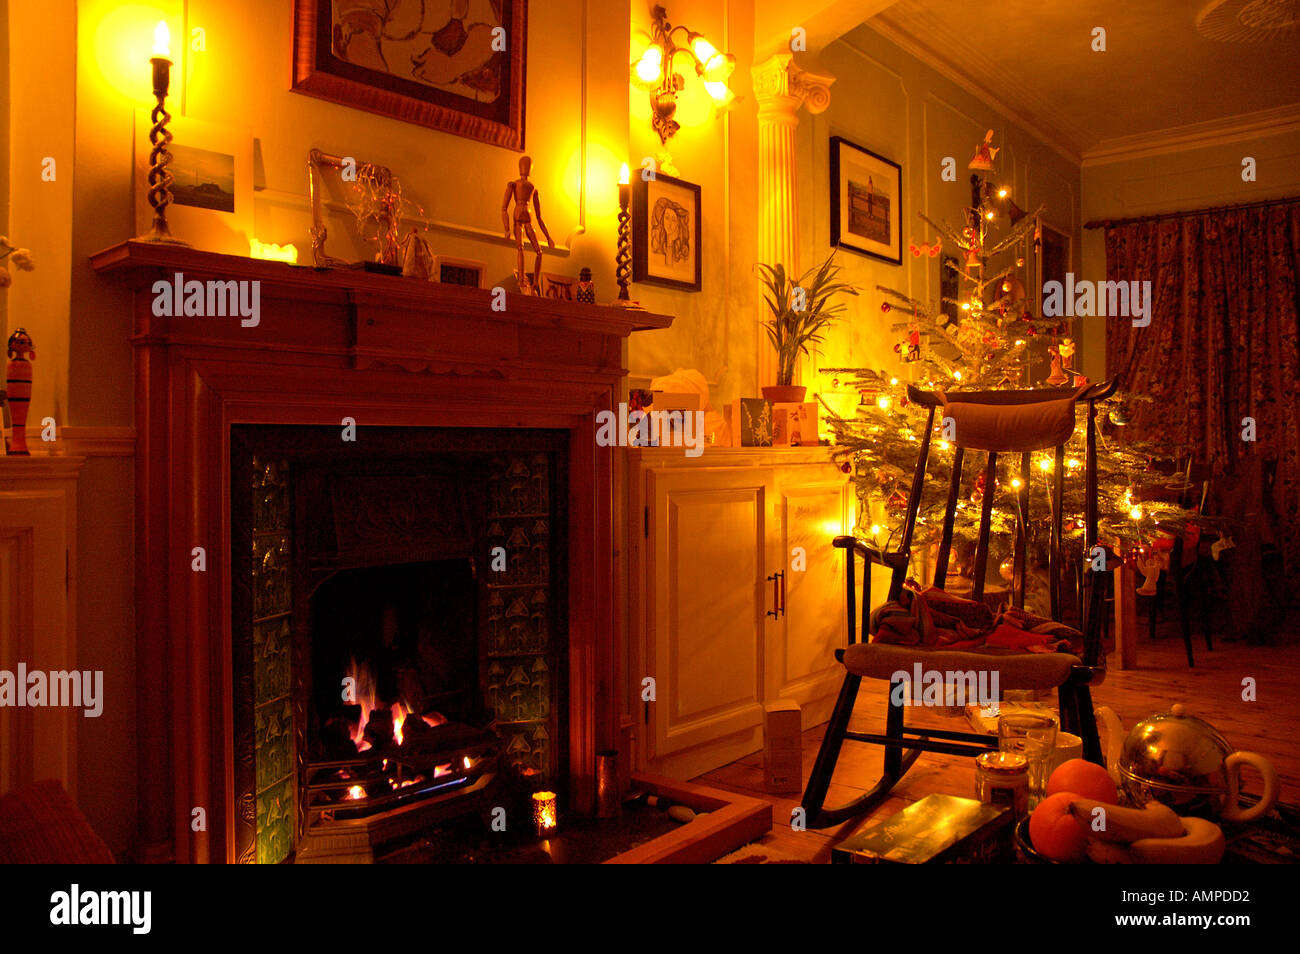 A Rocking Chair By An Open Fire With Christmas Tree And Candles